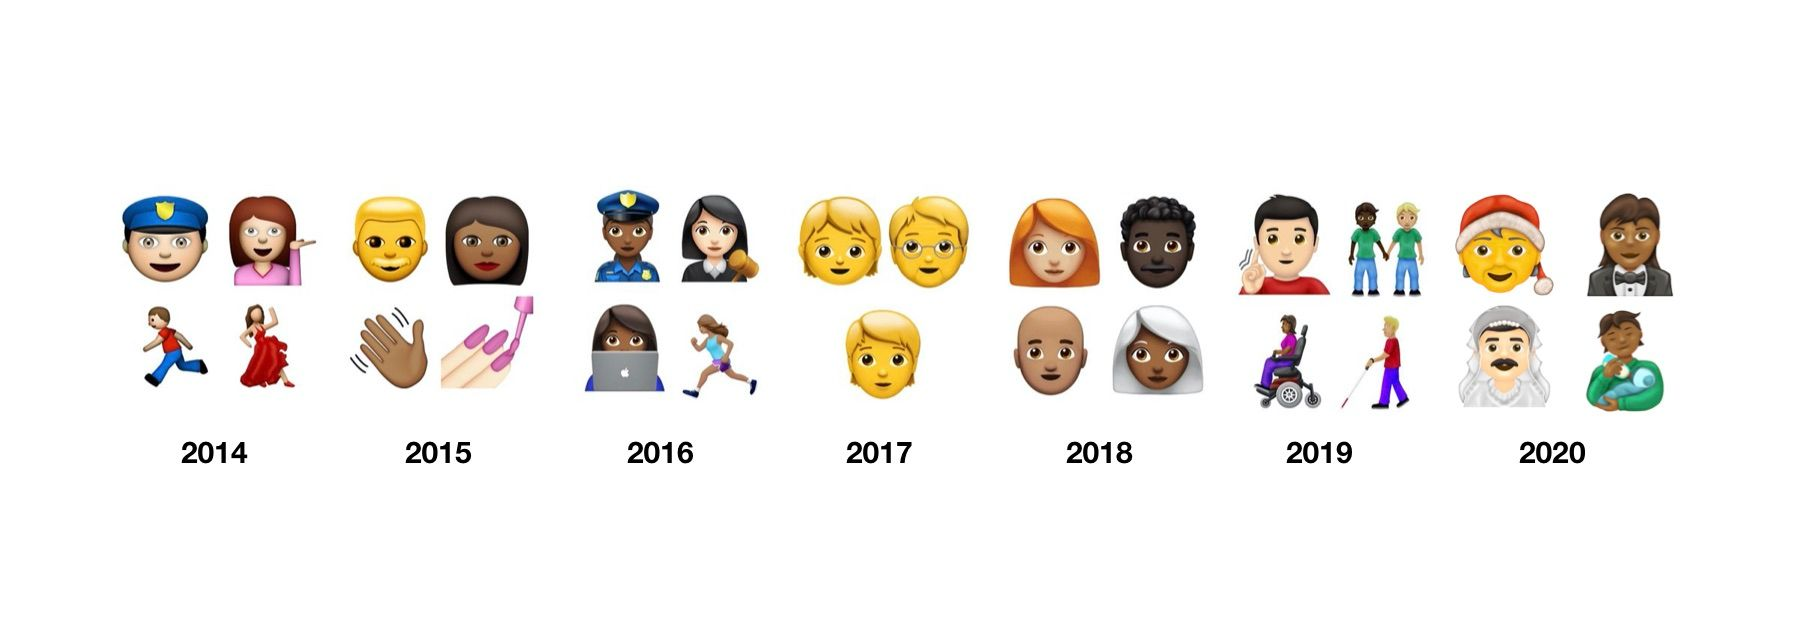 emojipedia-apple-emoji-evolution-2020